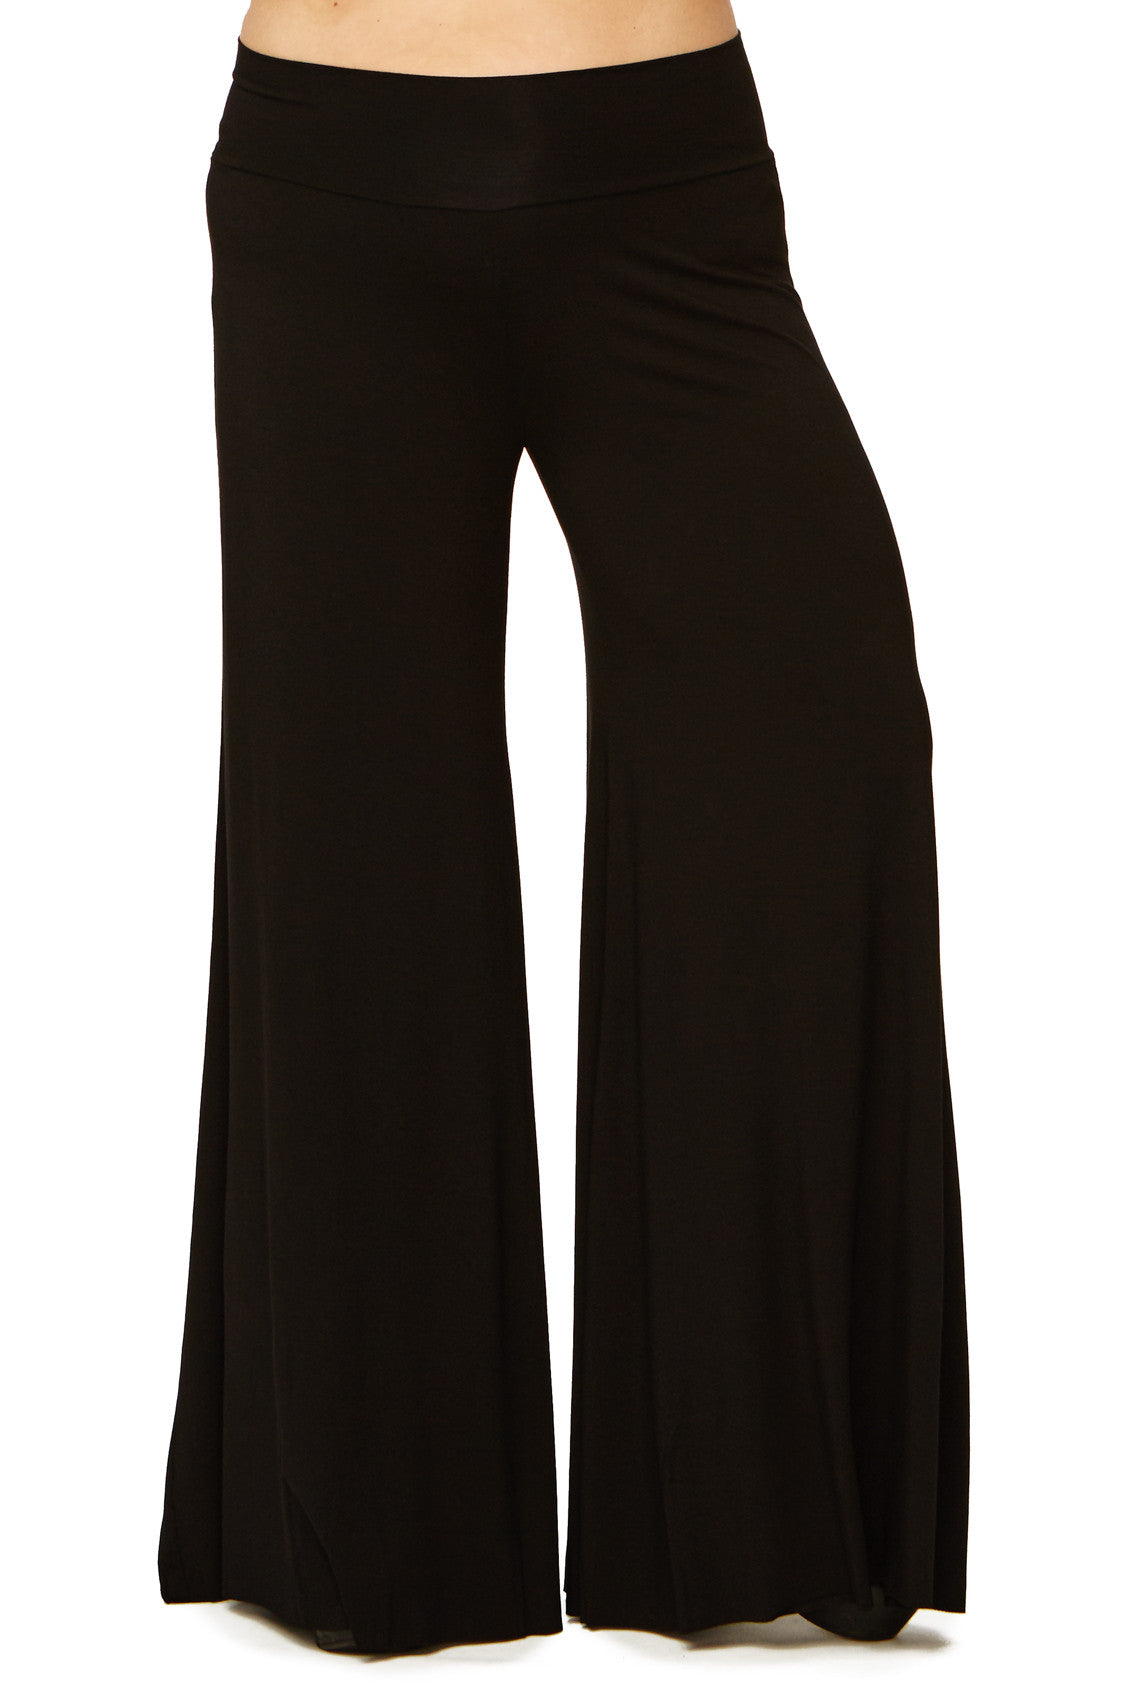 Jersey fabric Pleated Wide leg Elasticated waistband Our model wears a UK 8 and is cm/5'9'' tall.